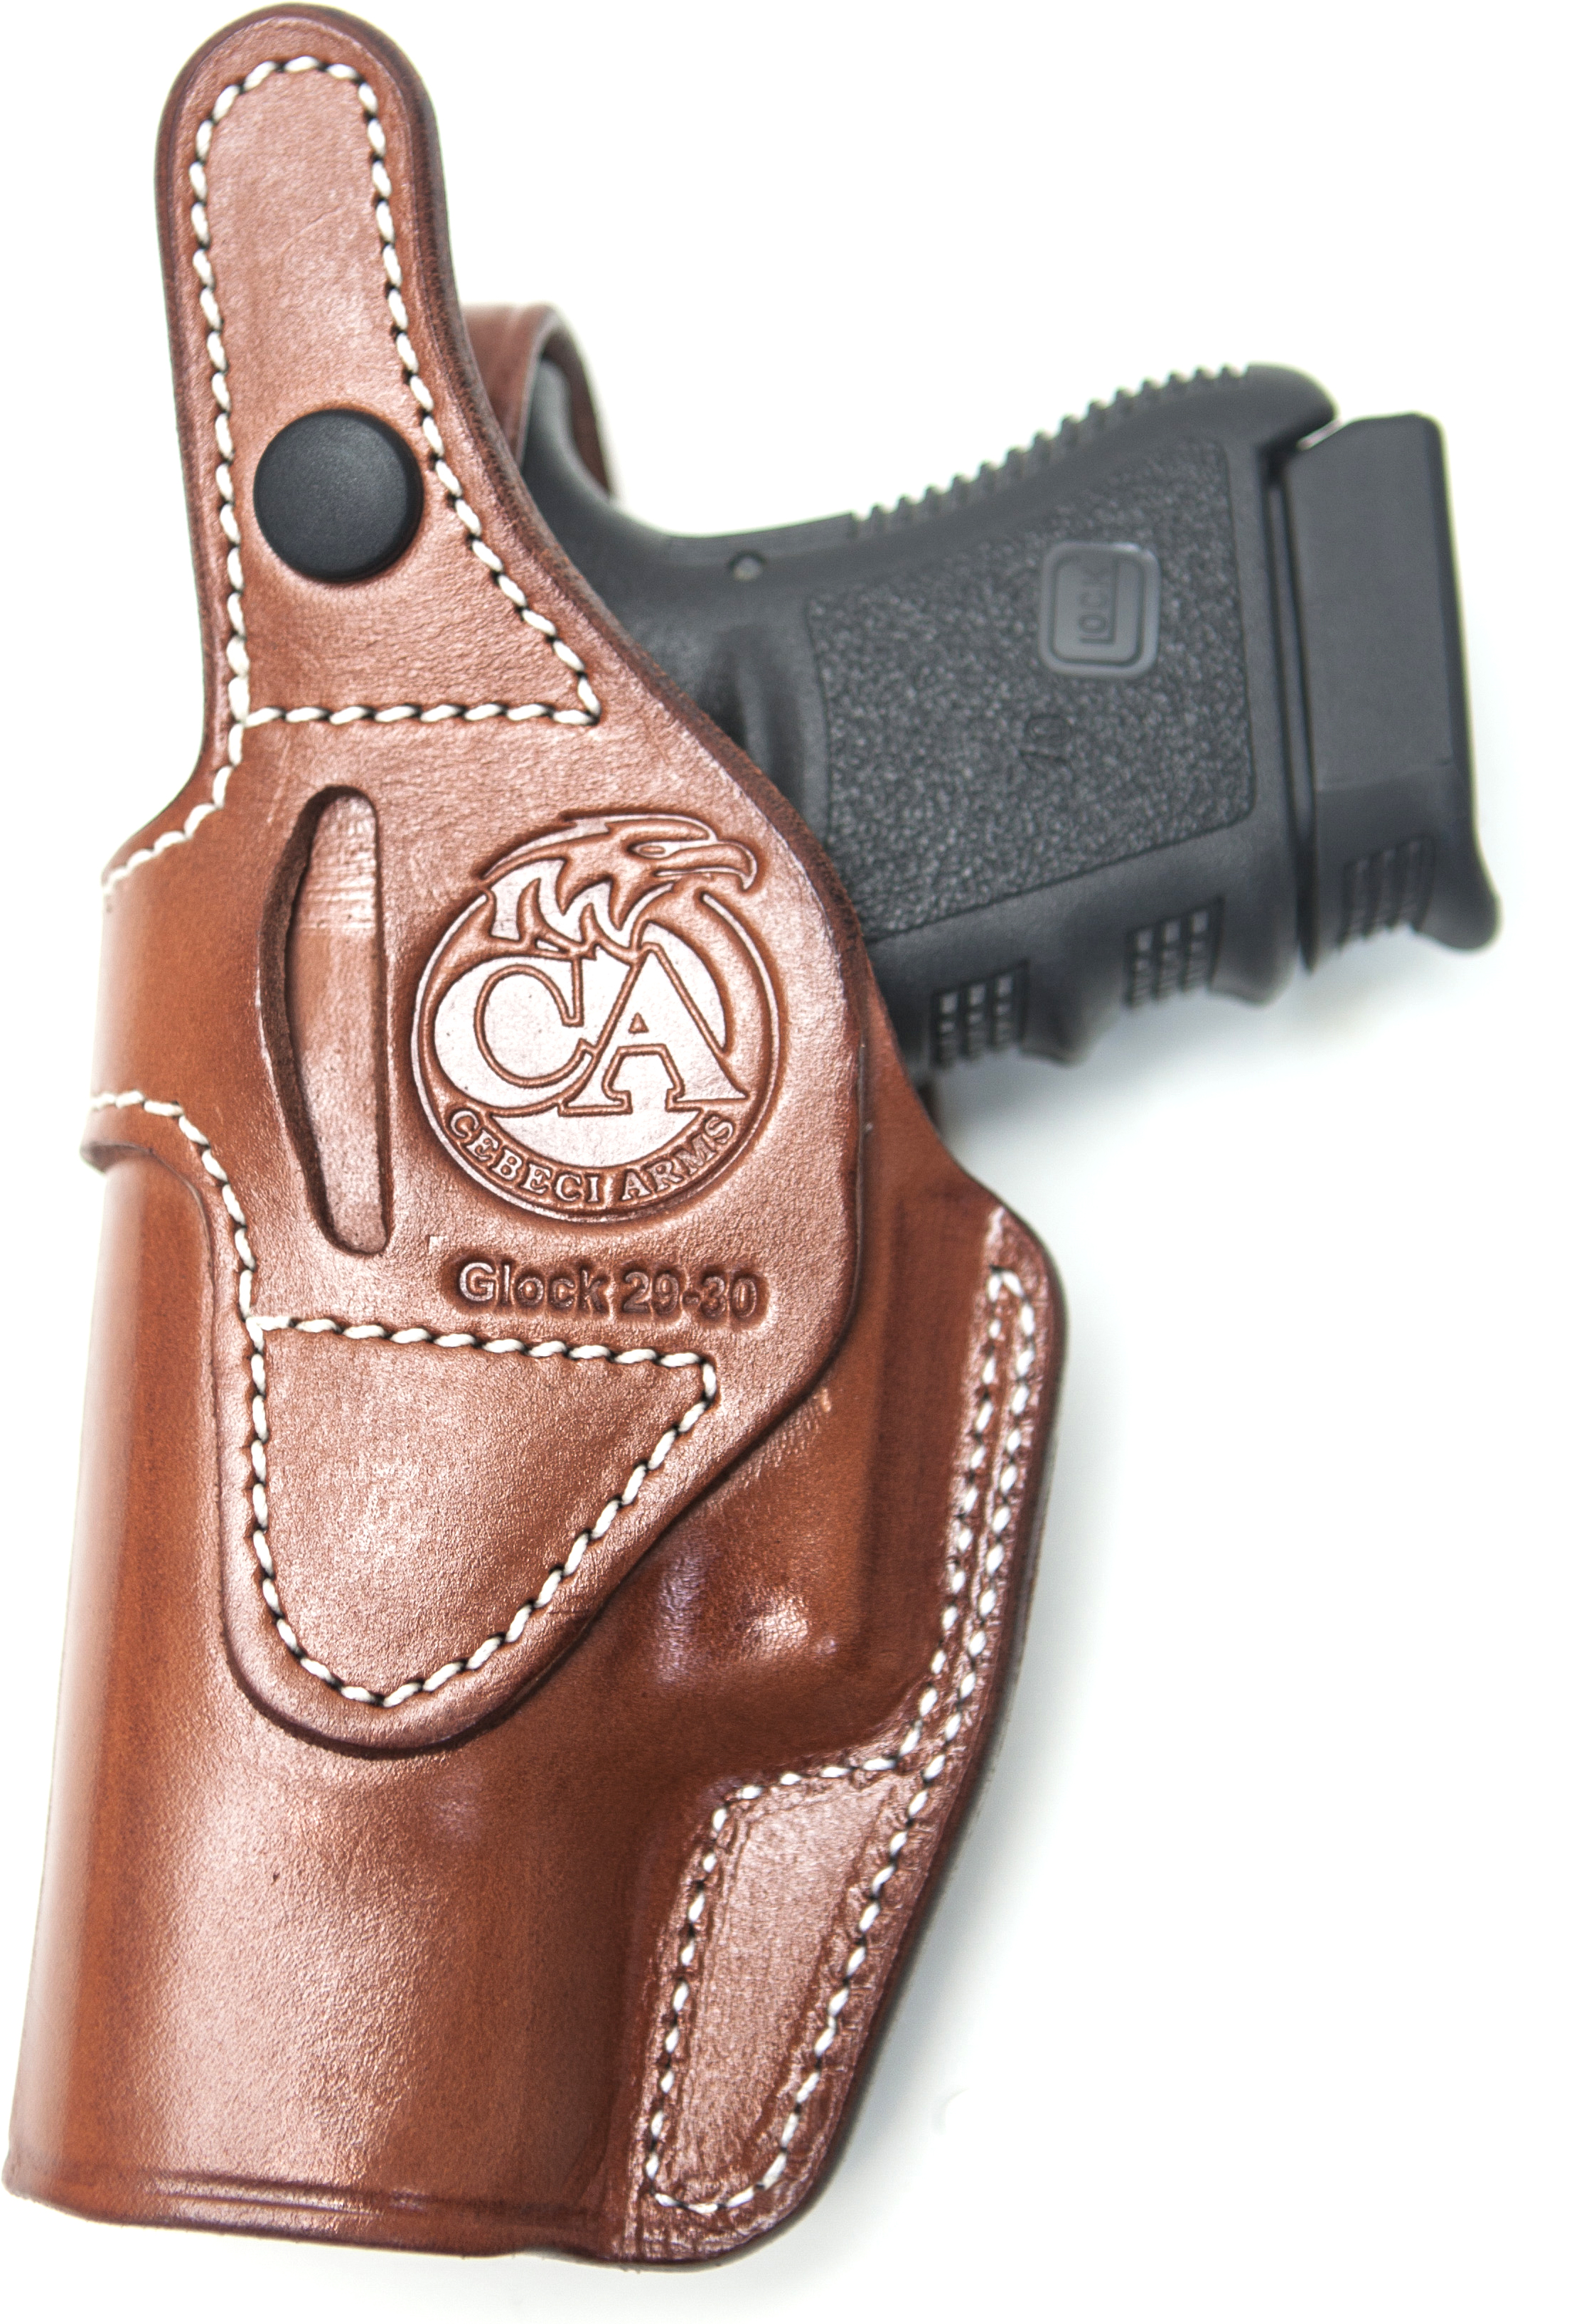 Cebeci Arms Ruger Leather IWB Holster